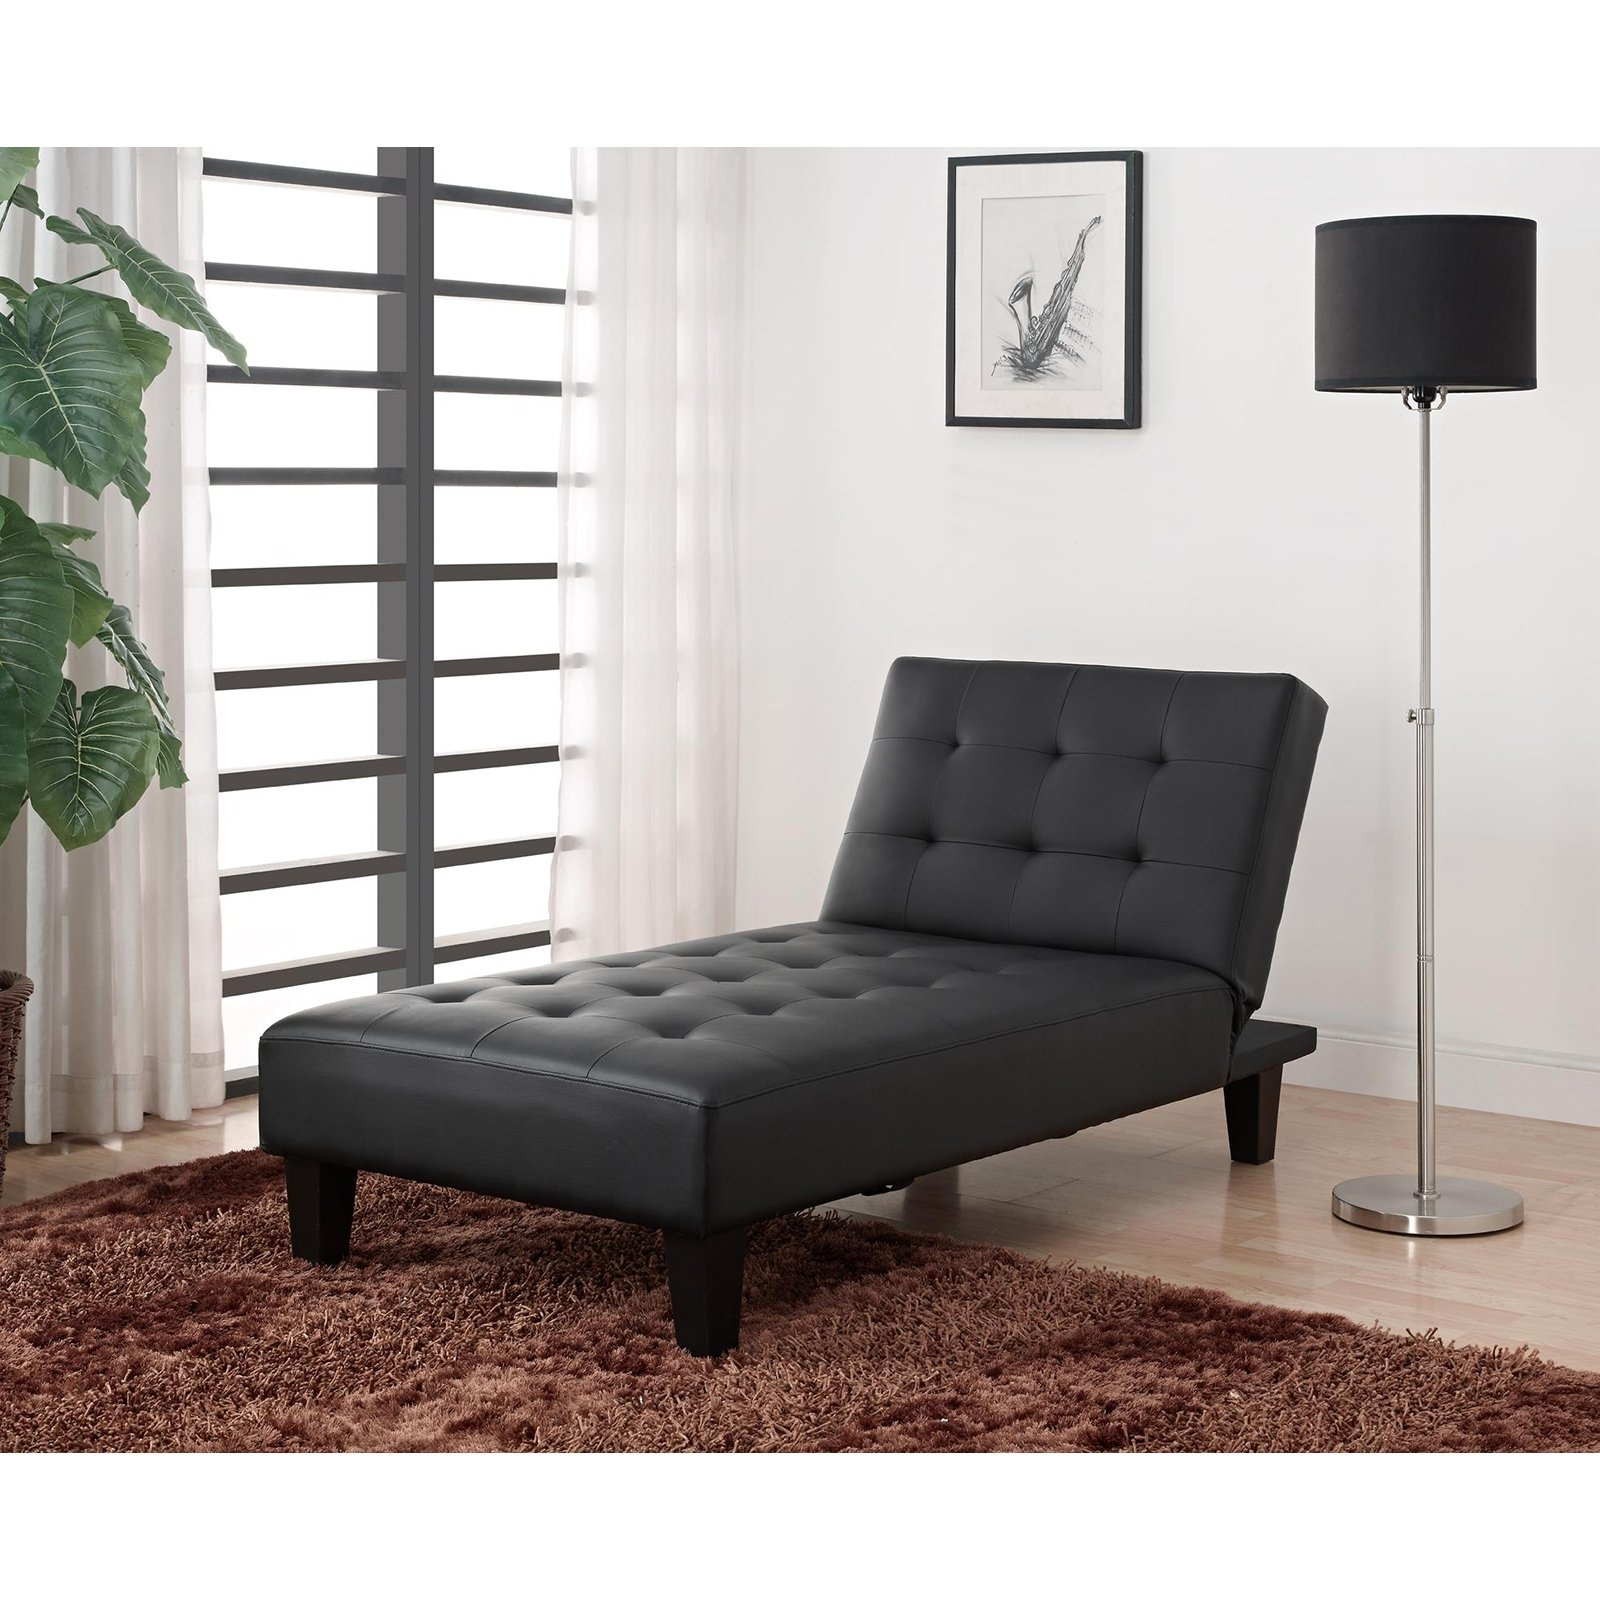 Preferred Indoor Chaise Lounge Chairs In Indoor Chaise Lounge Chairs (View 15 of 15)